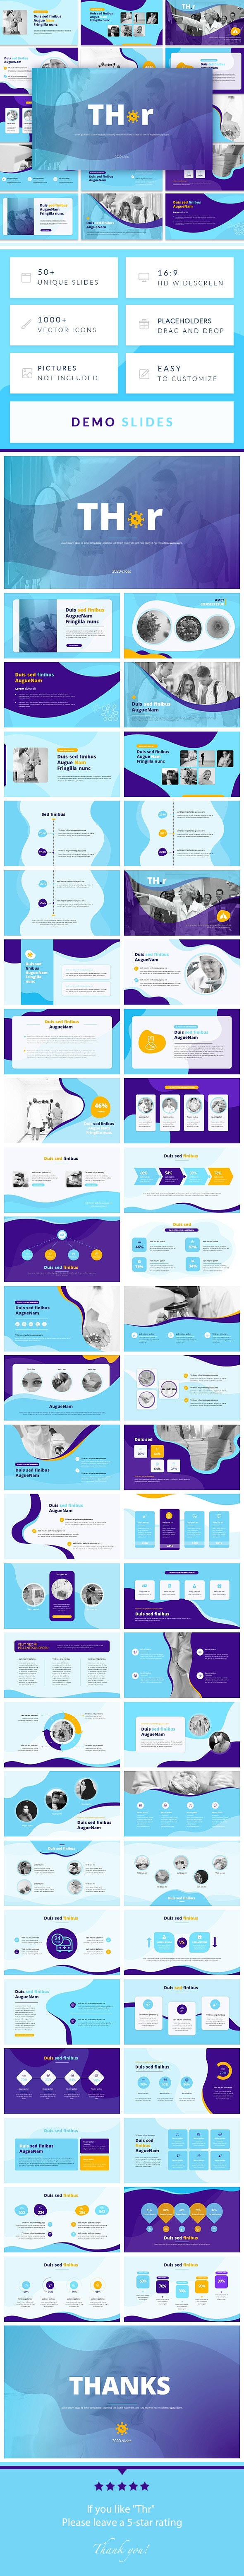 Thr-Covid Medical PowerPoint Presentation Template - Miscellaneous PowerPoint Templates